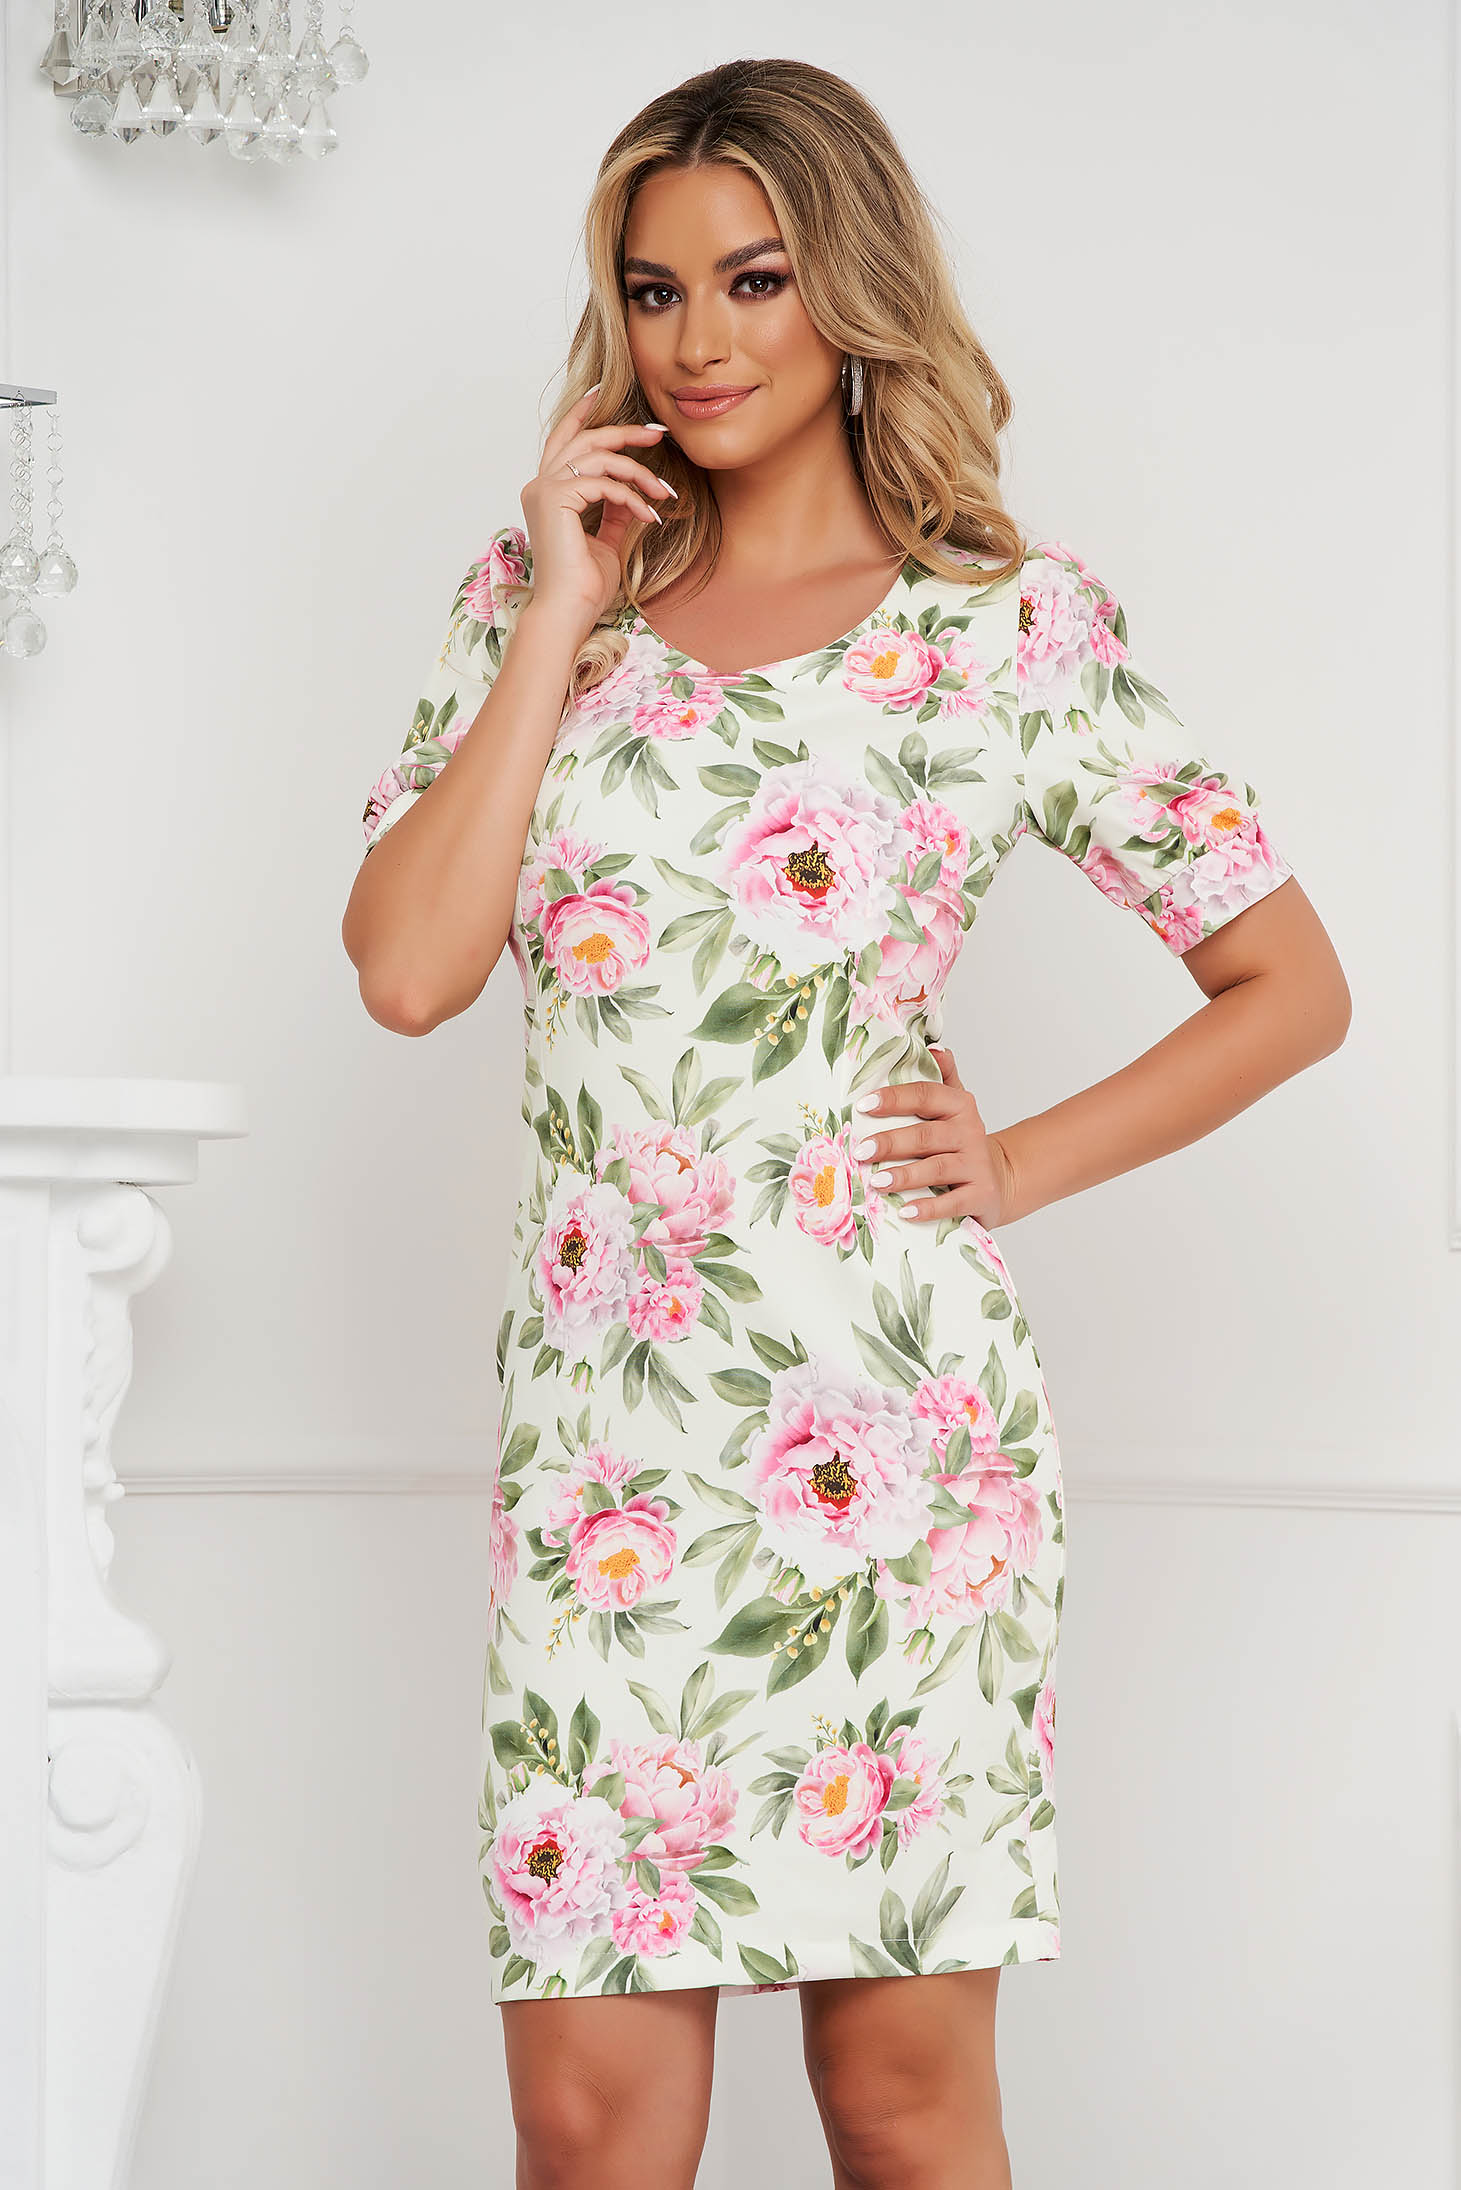 StarShinerS dress short cut office straight with floral print non-flexible thin fabric